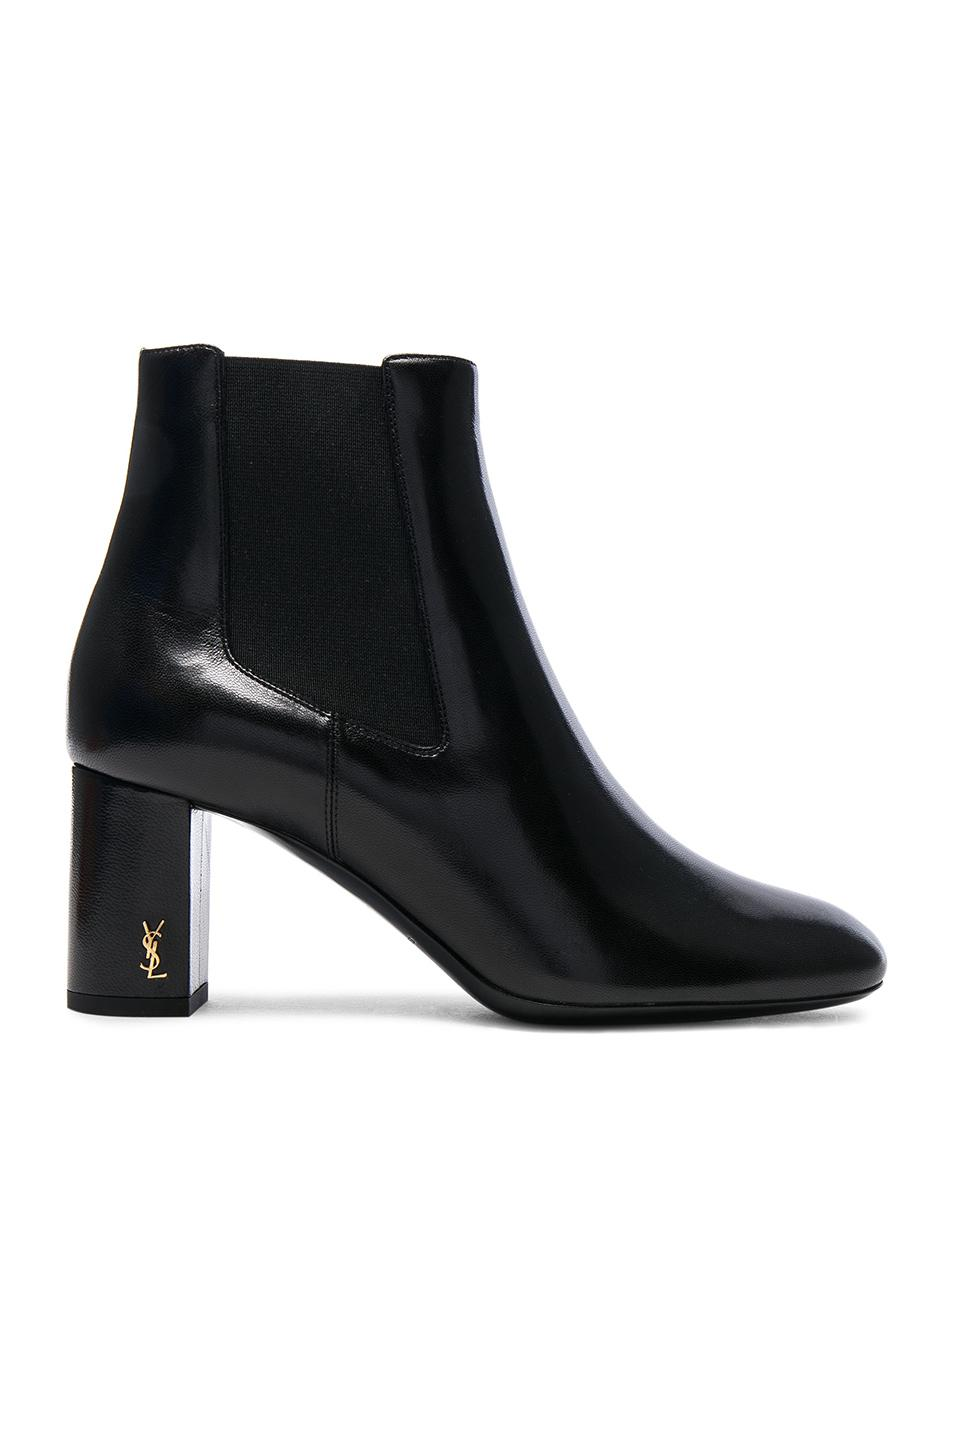 Saint Laurent Leather Loulou Pin Boots in . sOo4GjN